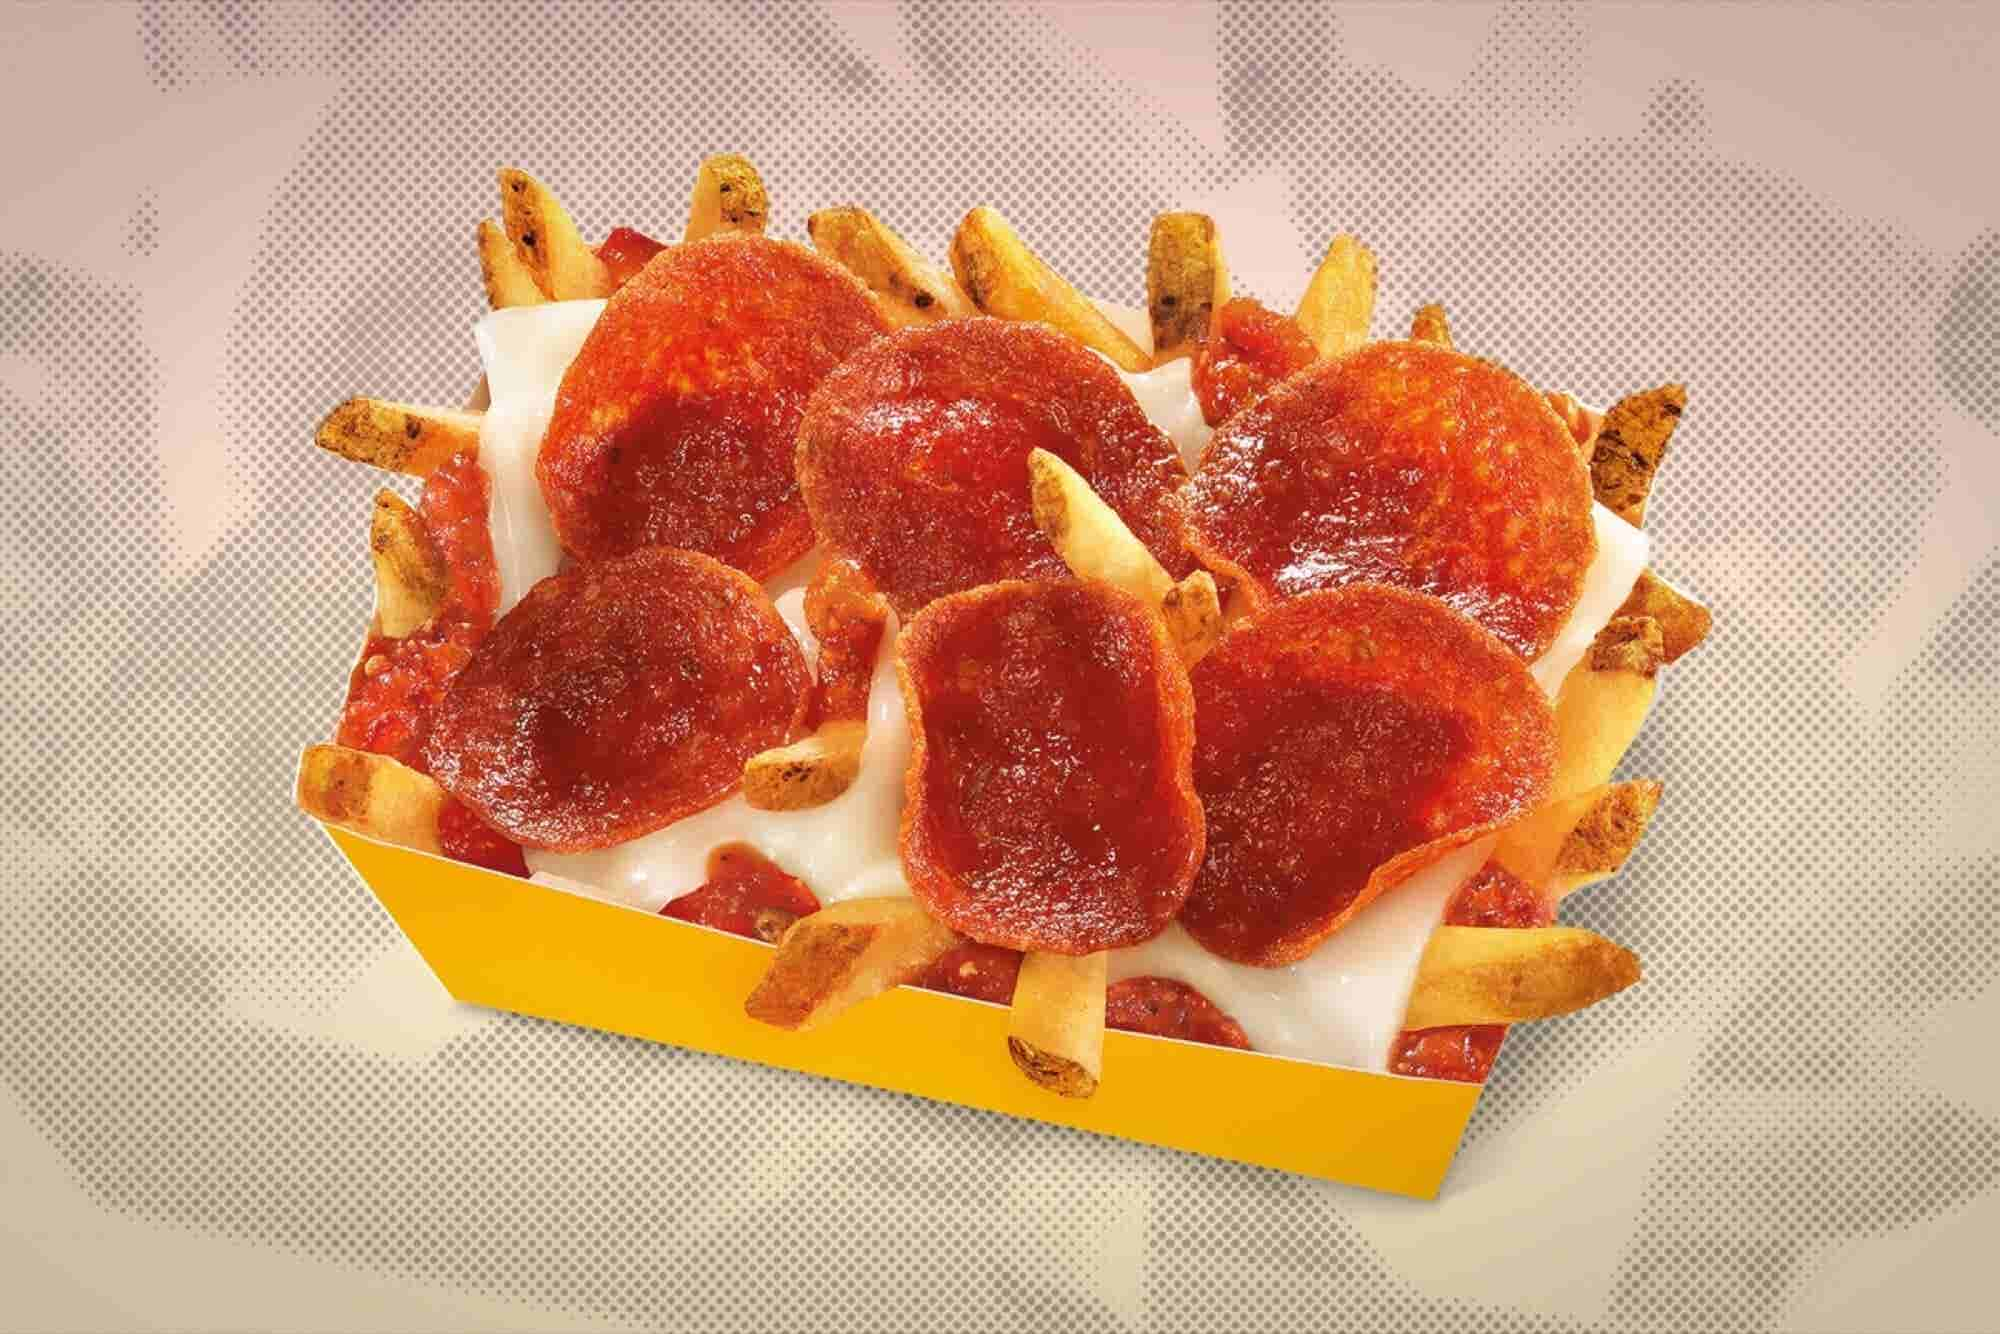 Carl's Jr. Tests Pepperoni Pizza Fries, Which Are Exactly What They Sound Like